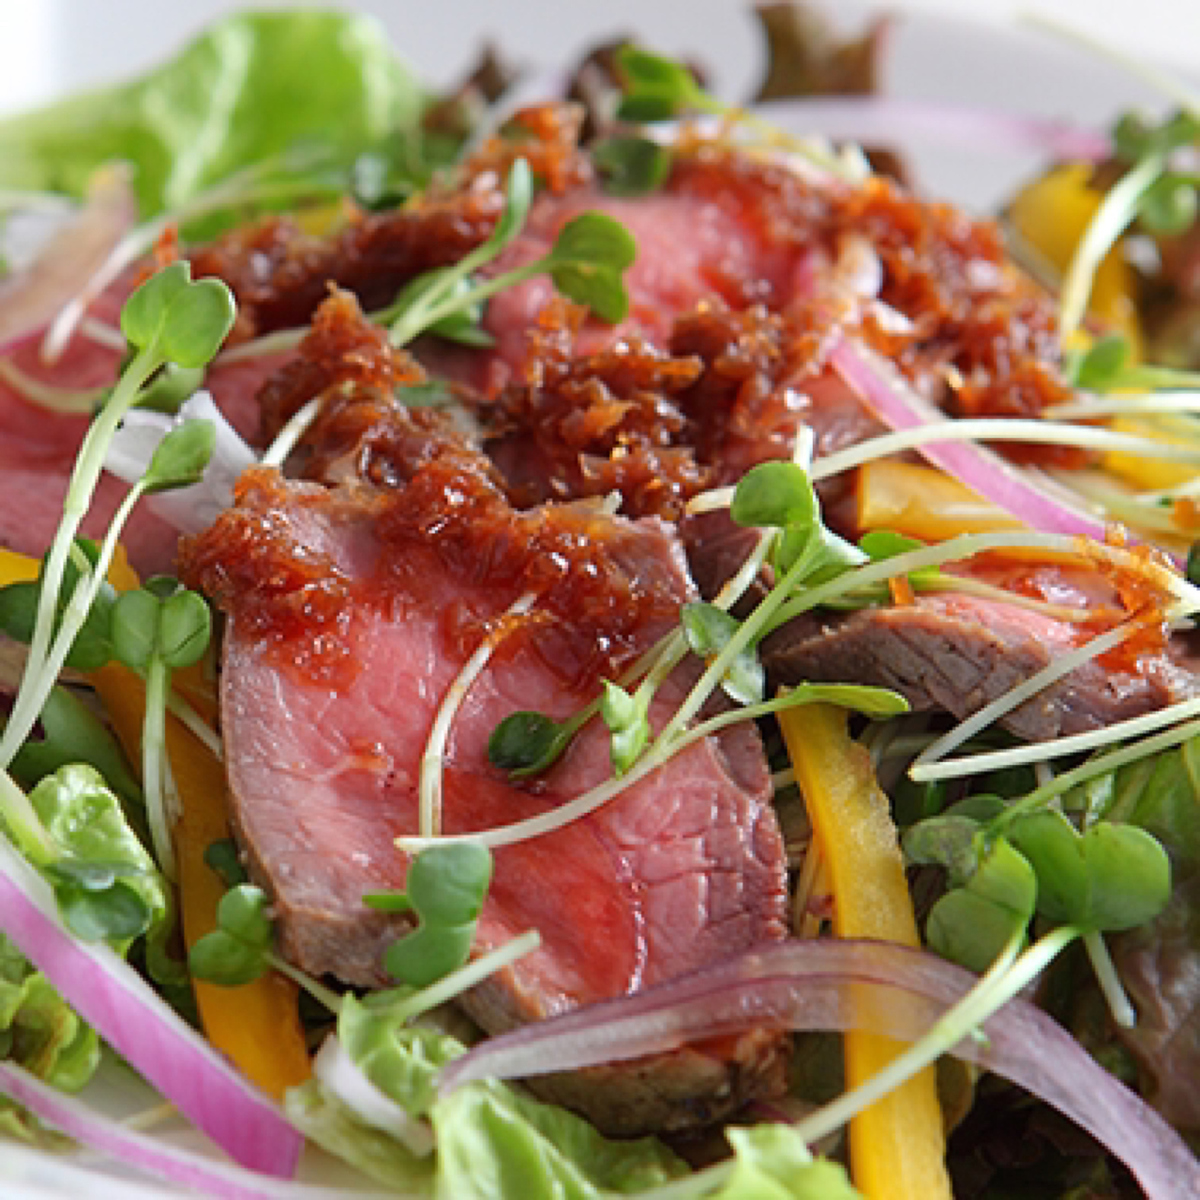 Japanese style salad with roast beef